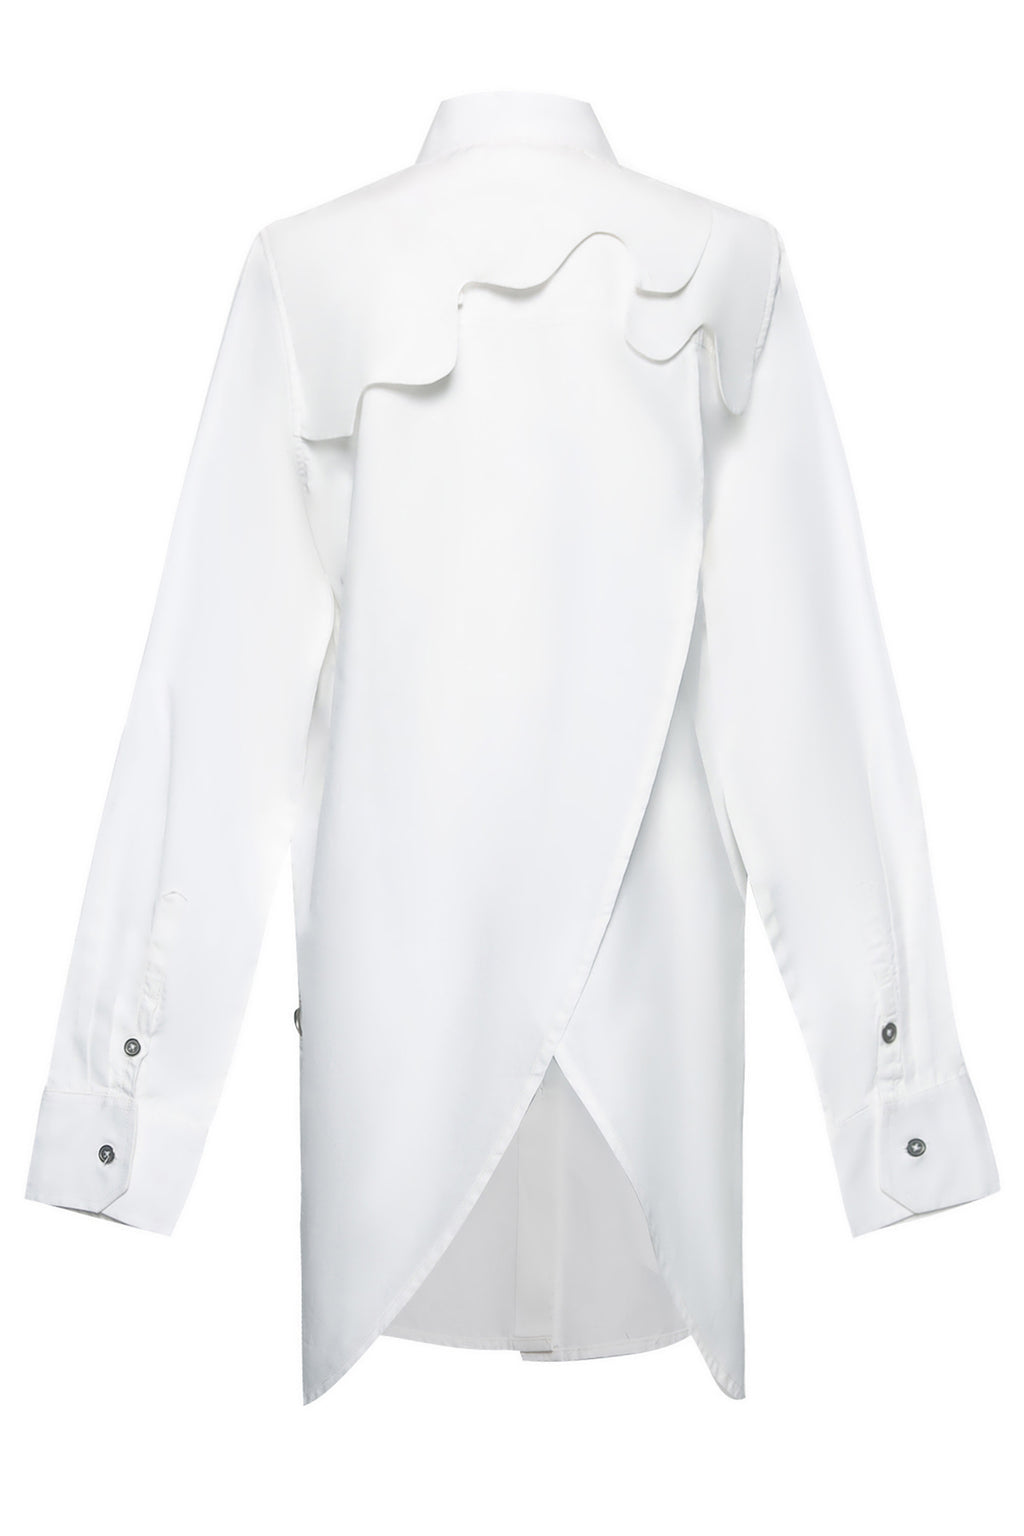 Overlap Back Cloud Yoke Cotton Shirt in White